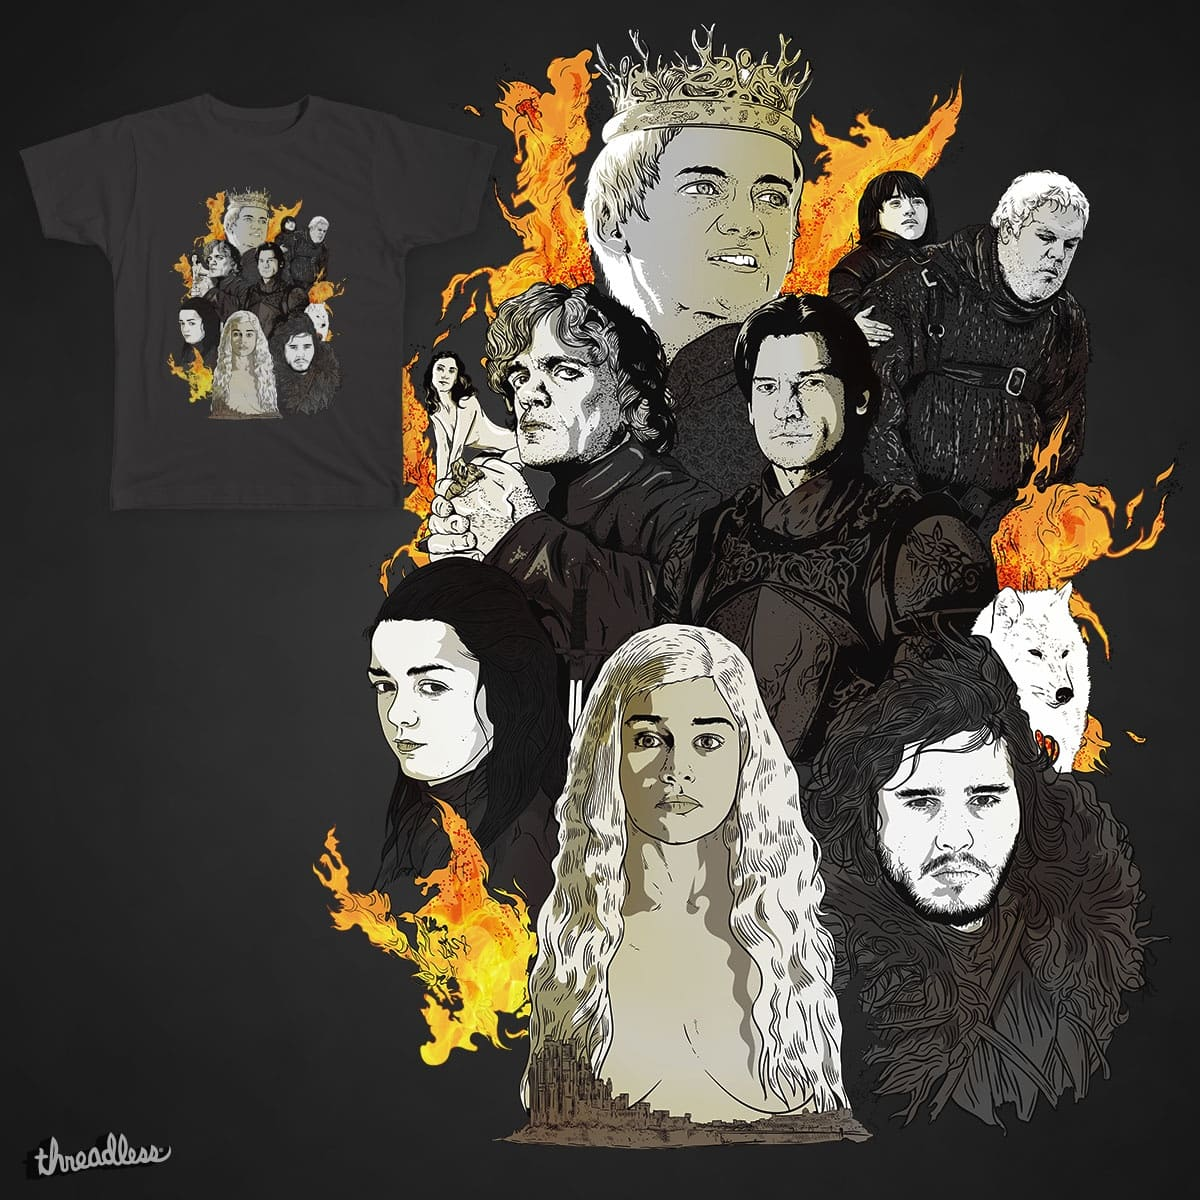 Game of Thrones by rohan.jha.792 on Threadless